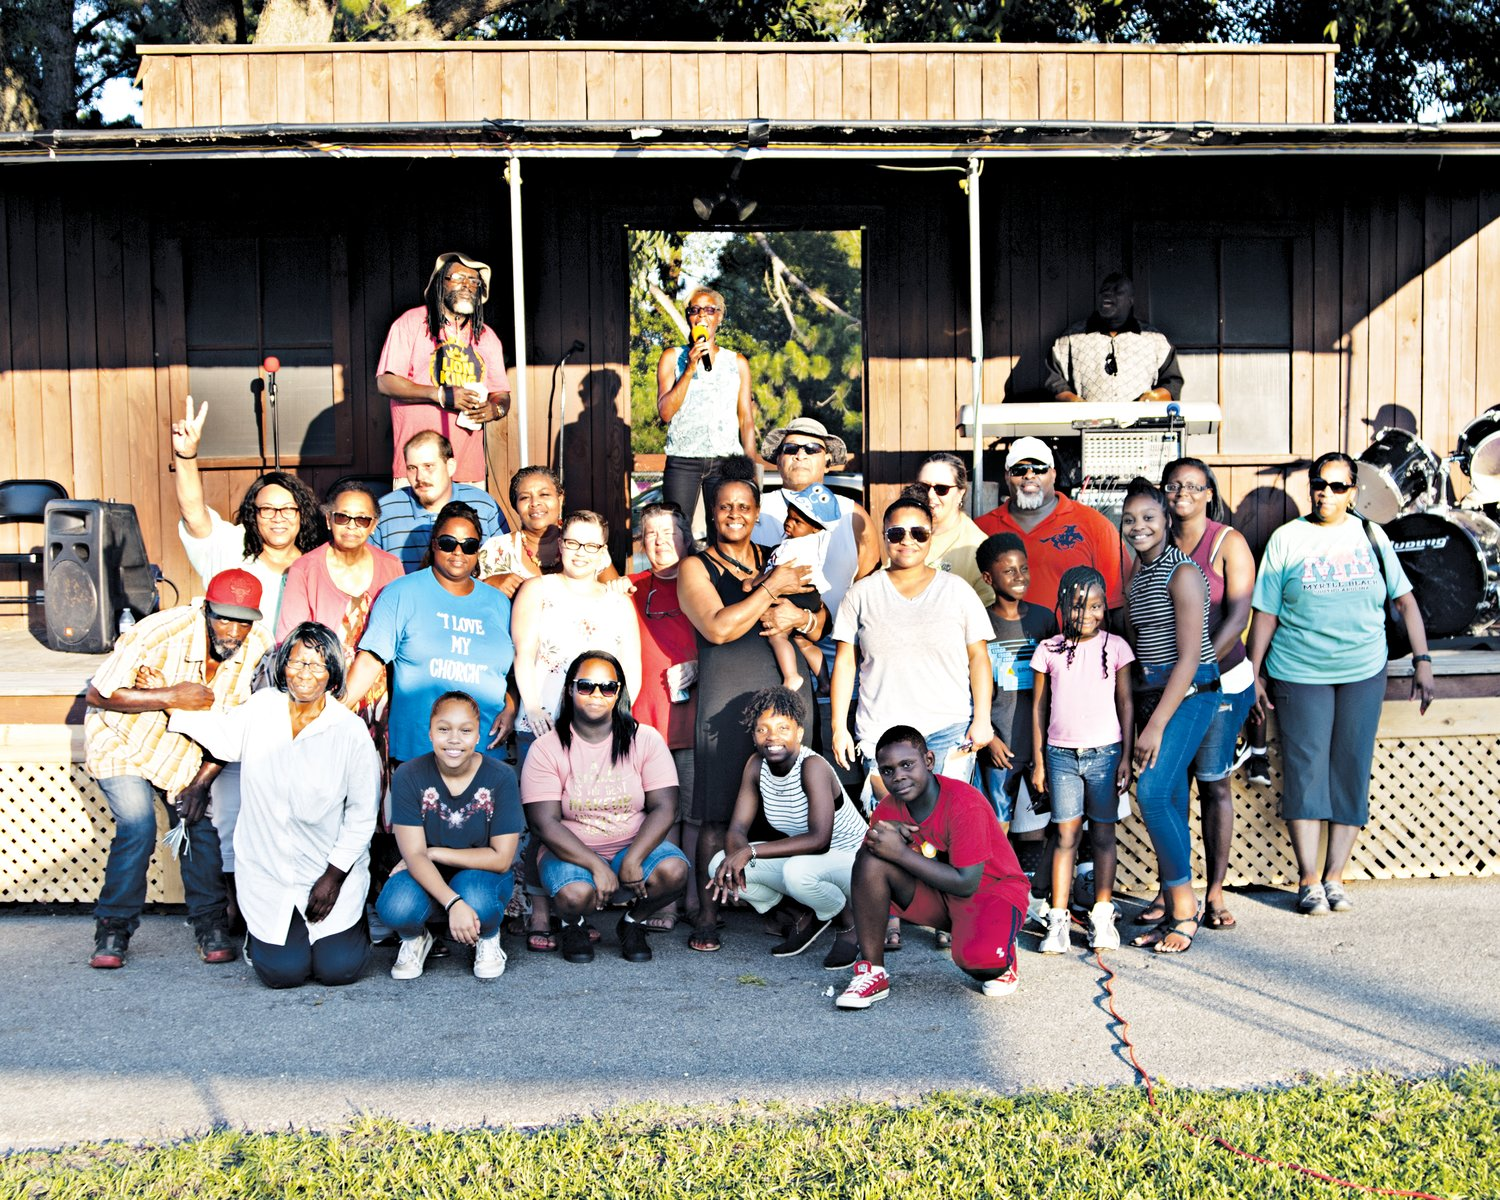 Pastor Rhonda Ray, center, poses for a group photo with community members and the congregation of Grazing Mountain Church.